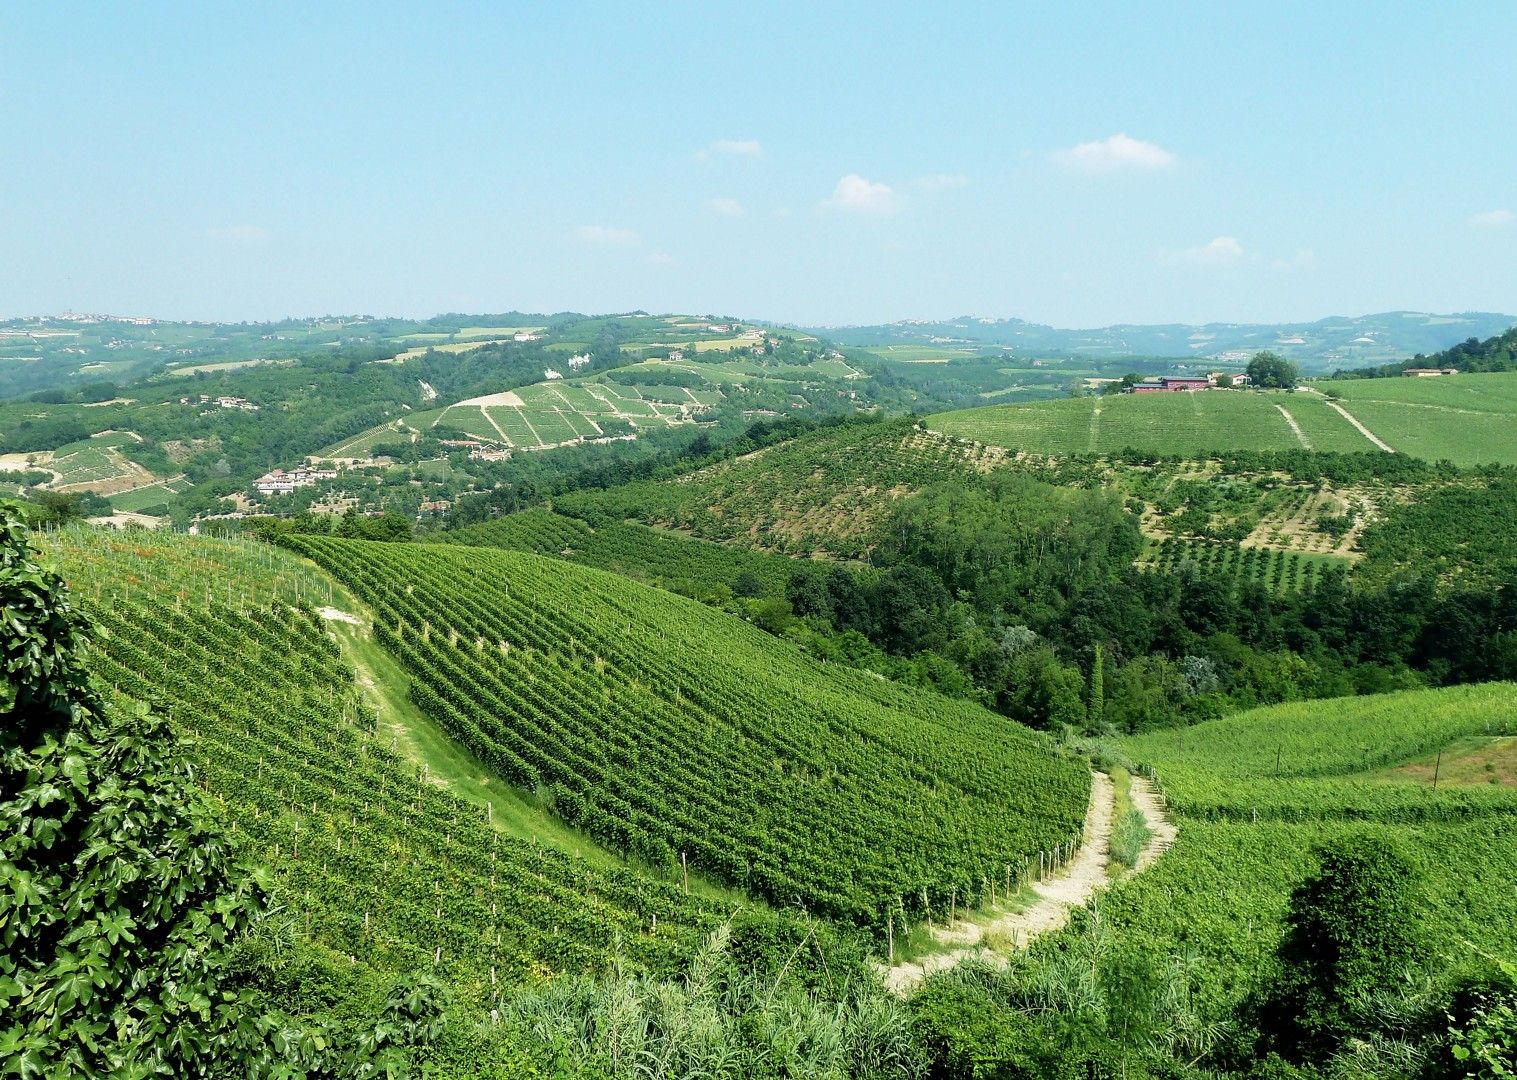 canale-to-barolo-cycling-holiday-in-italy-piemontes-vineyards-and-views.jpg - Italy - Piemonte - Vineyards and Views - Self-Guided Leisure Cycling Holiday - Leisure Cycling